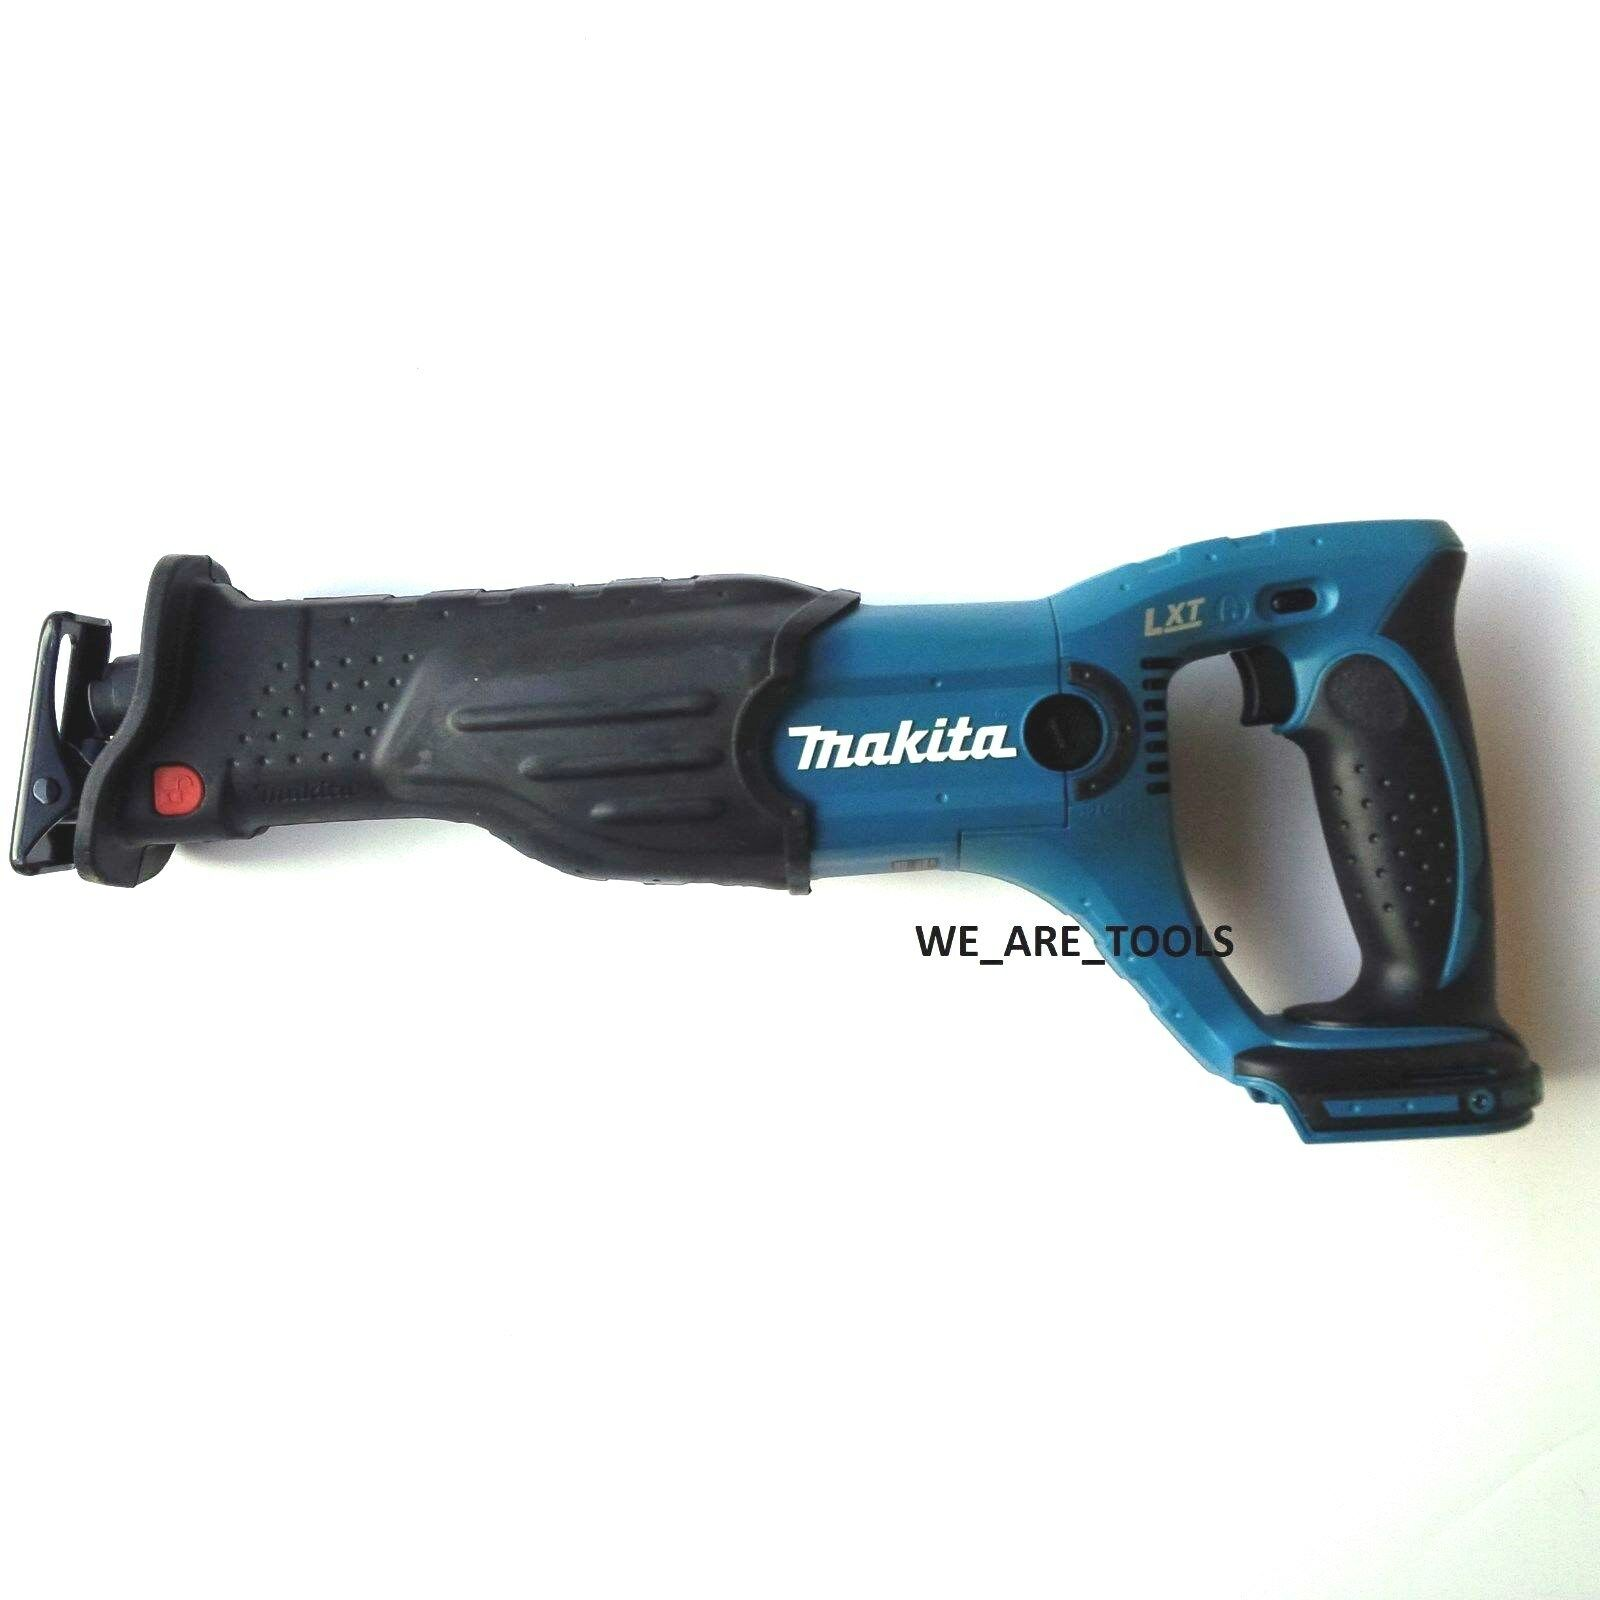 new makita 18v xrj03 cordless battery reciprocating saw w. Black Bedroom Furniture Sets. Home Design Ideas